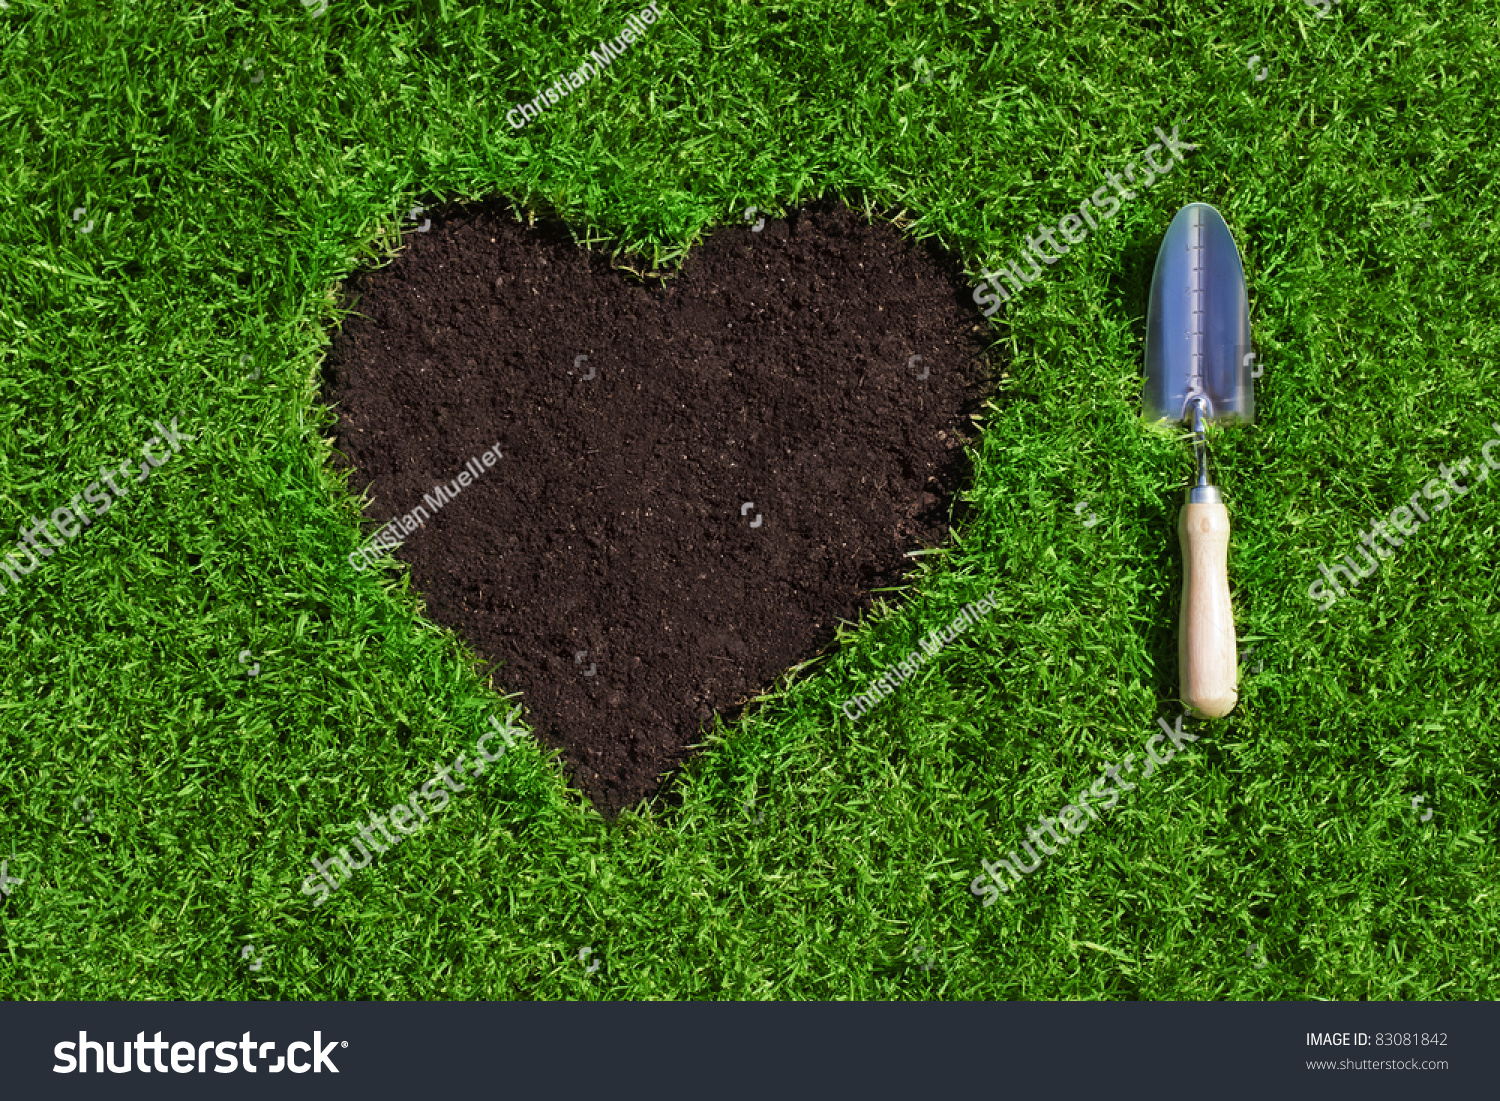 Heart soil inside green grass hand stock photo 83081842 for Soil and green